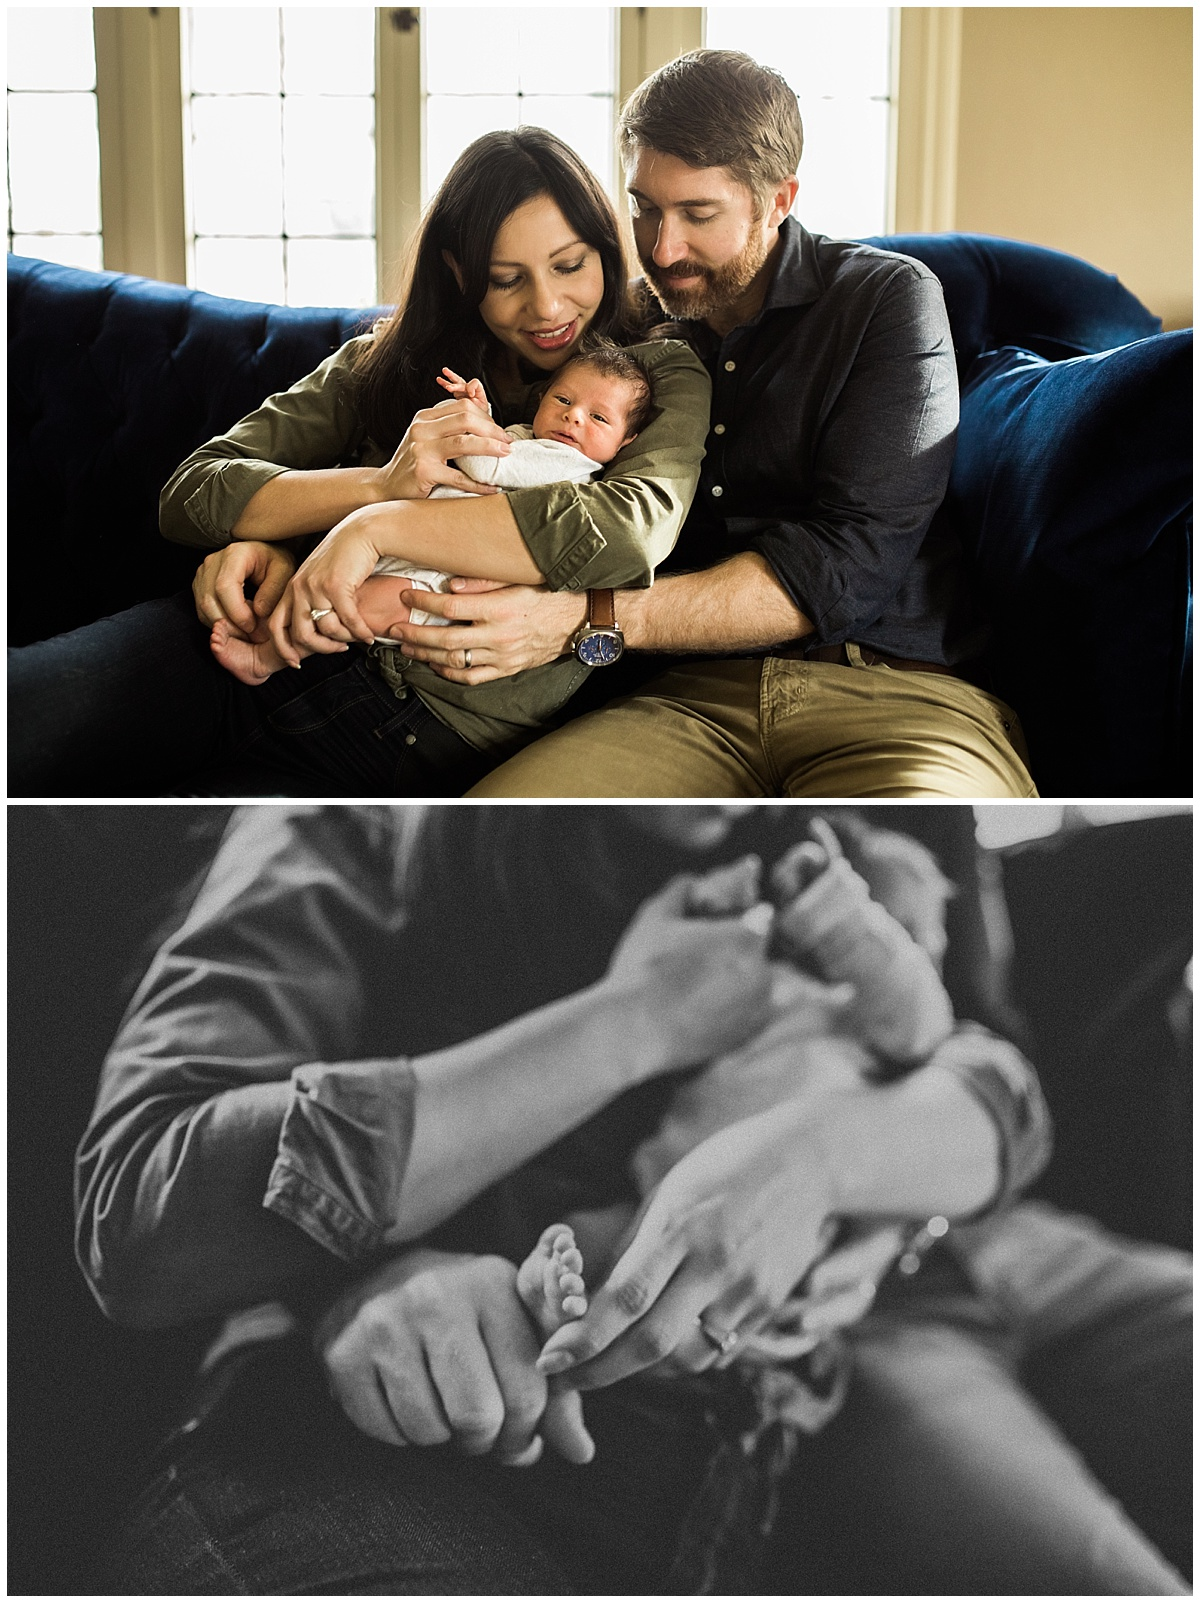 mom and dad with baby snuggling on couch | cleveland, OH newborn photos